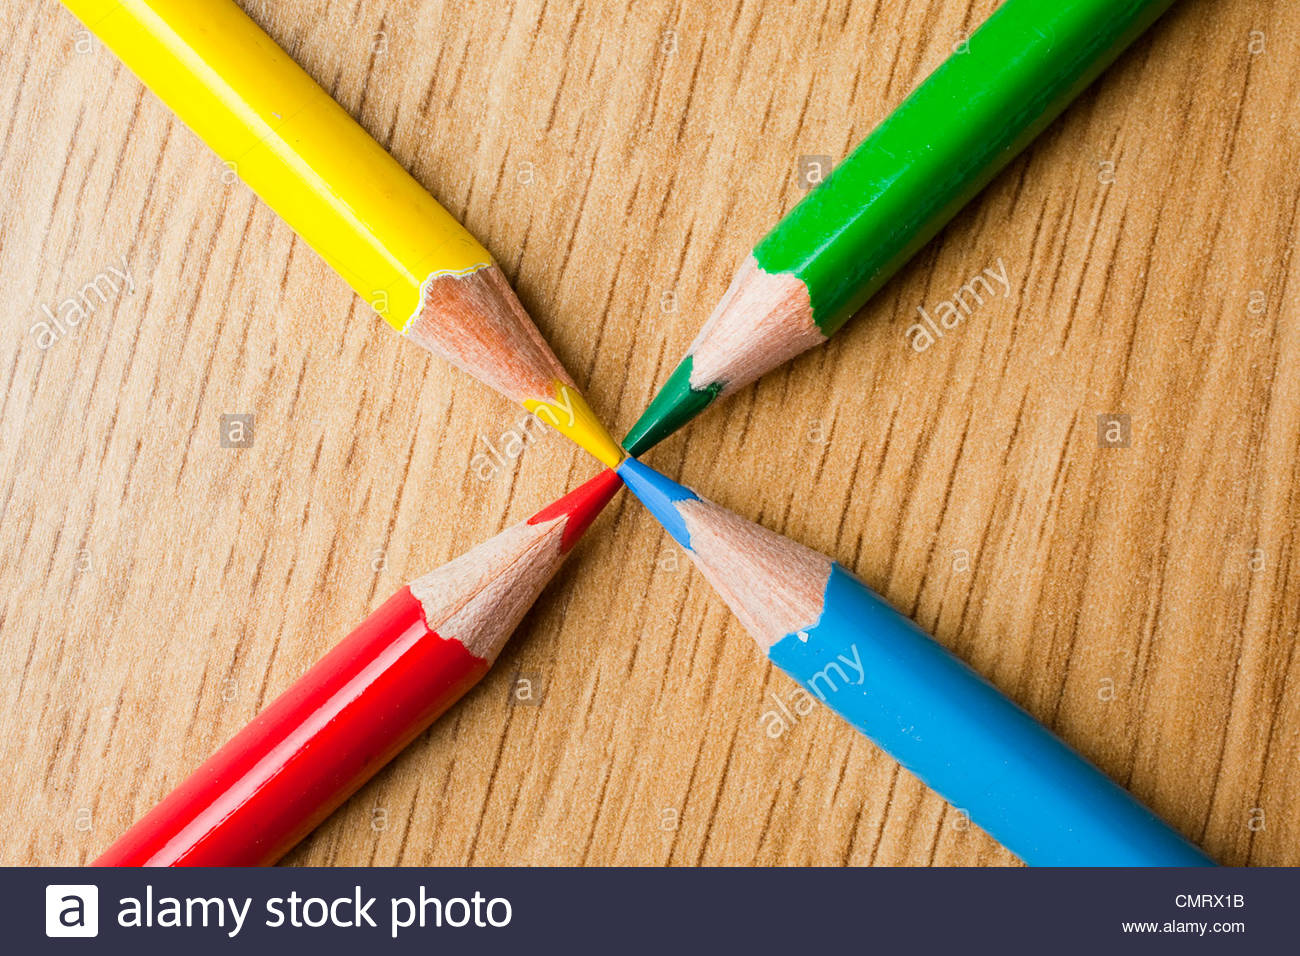 Four colored pencils - Stock Image